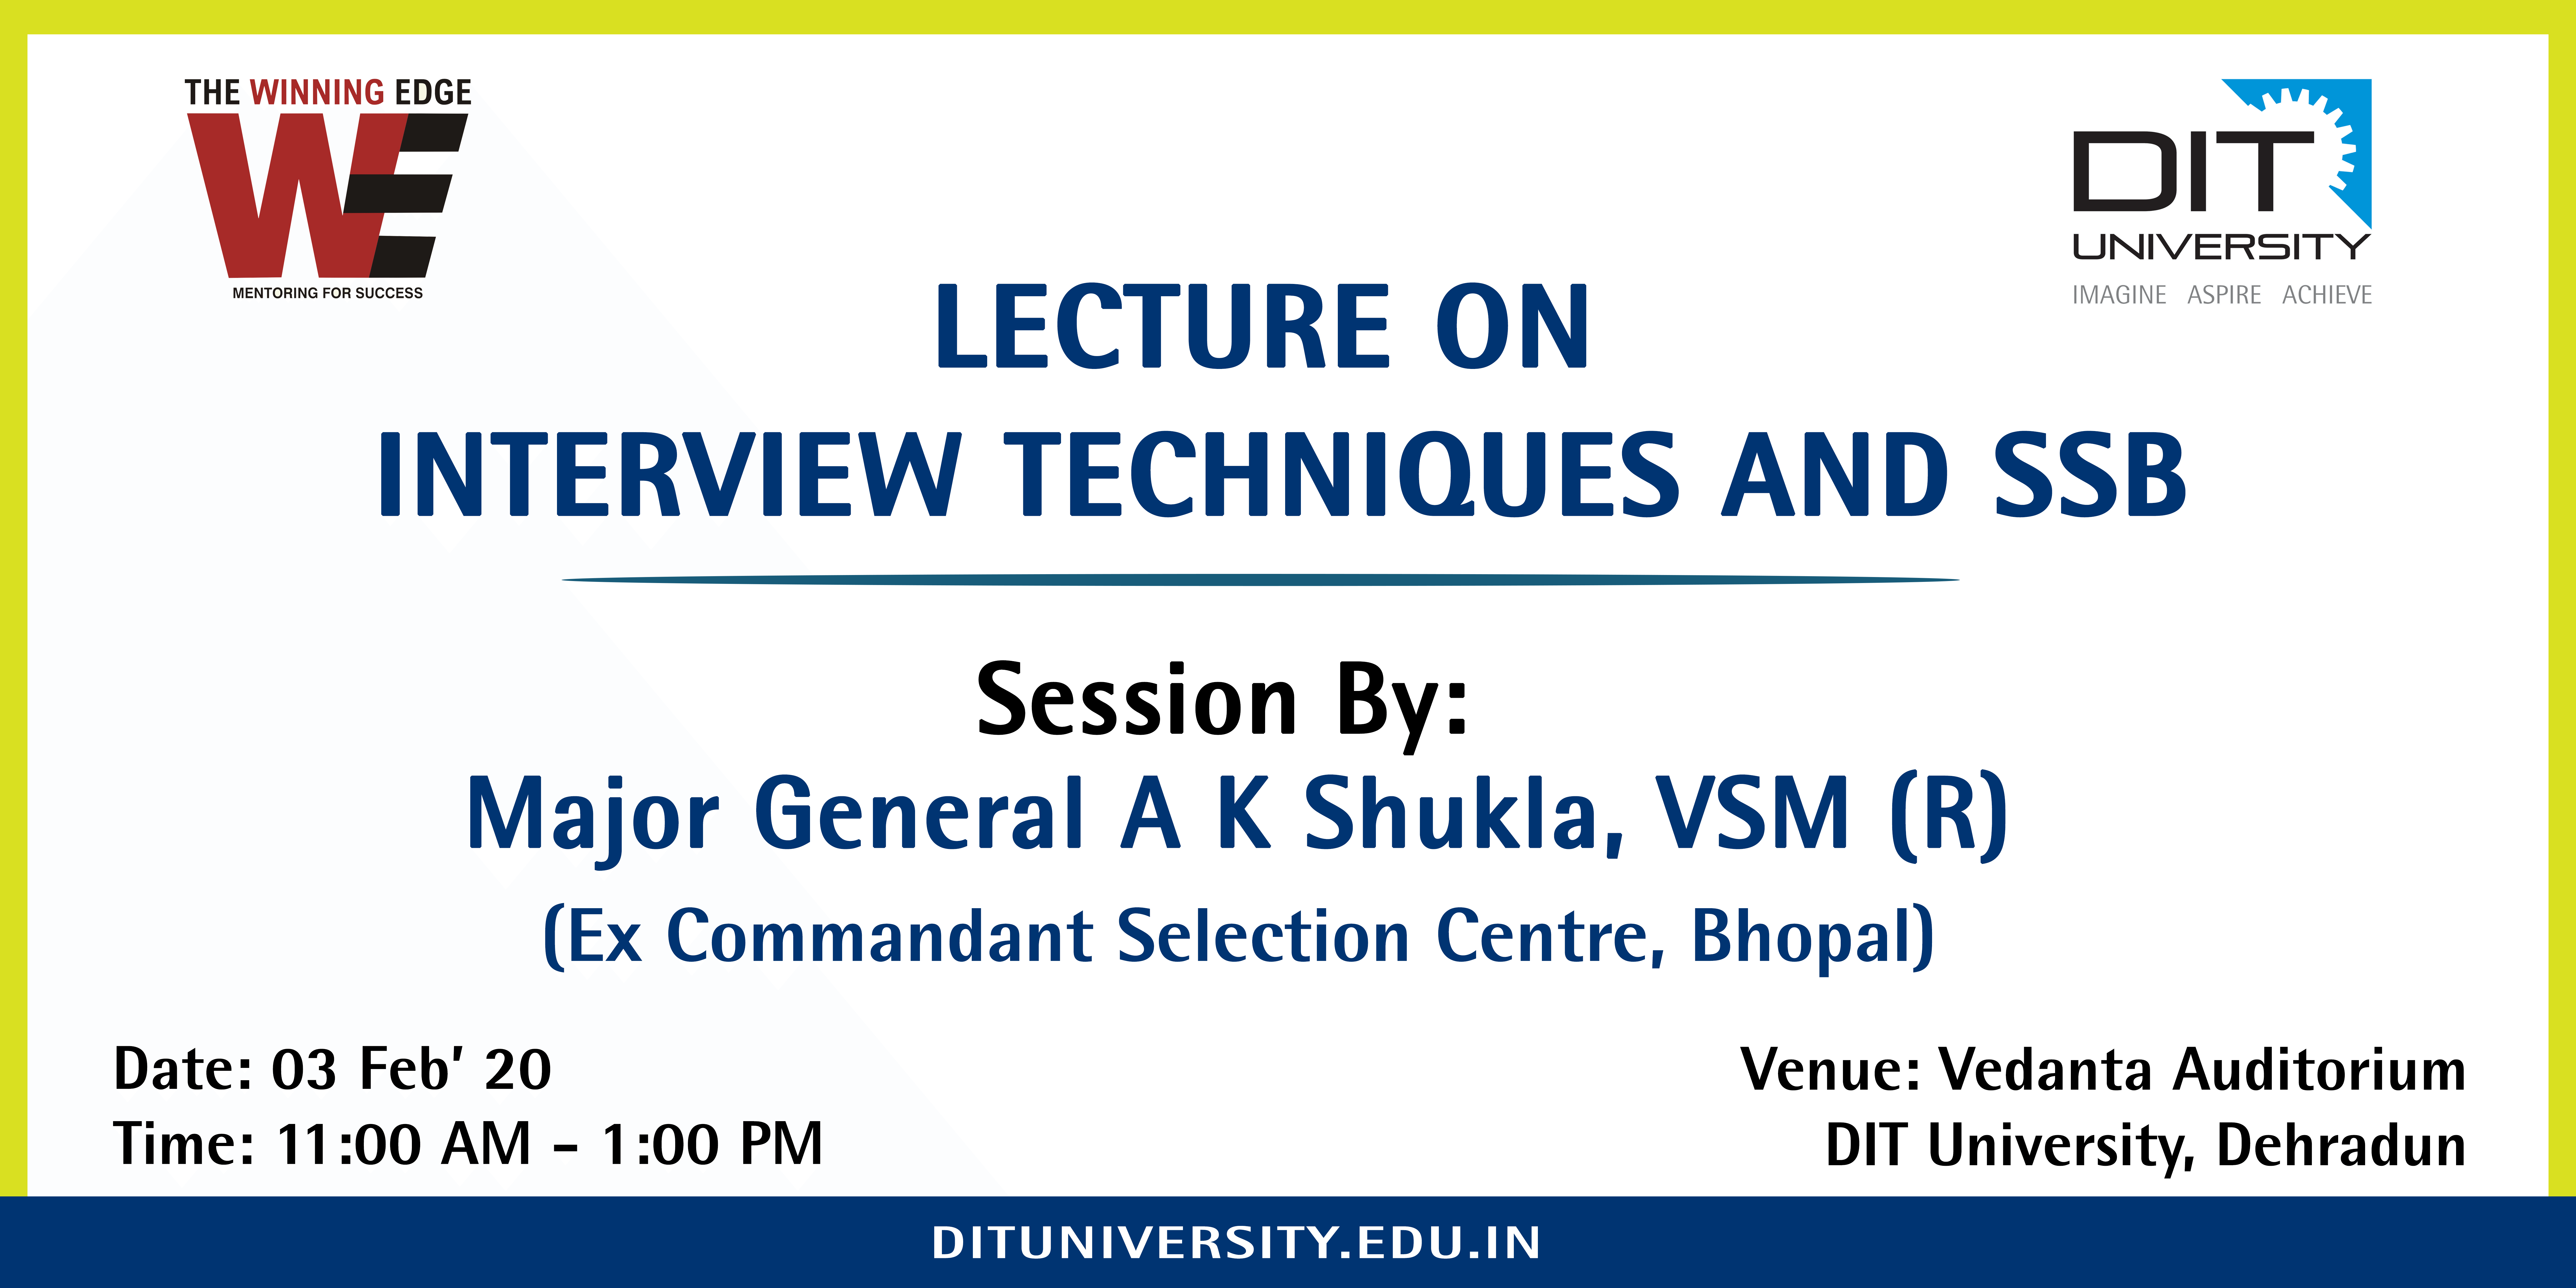 Guest Lecture On Interview Techniques and SSB by MAJOR GENERAL A. K. SHUKLA VSM (R)